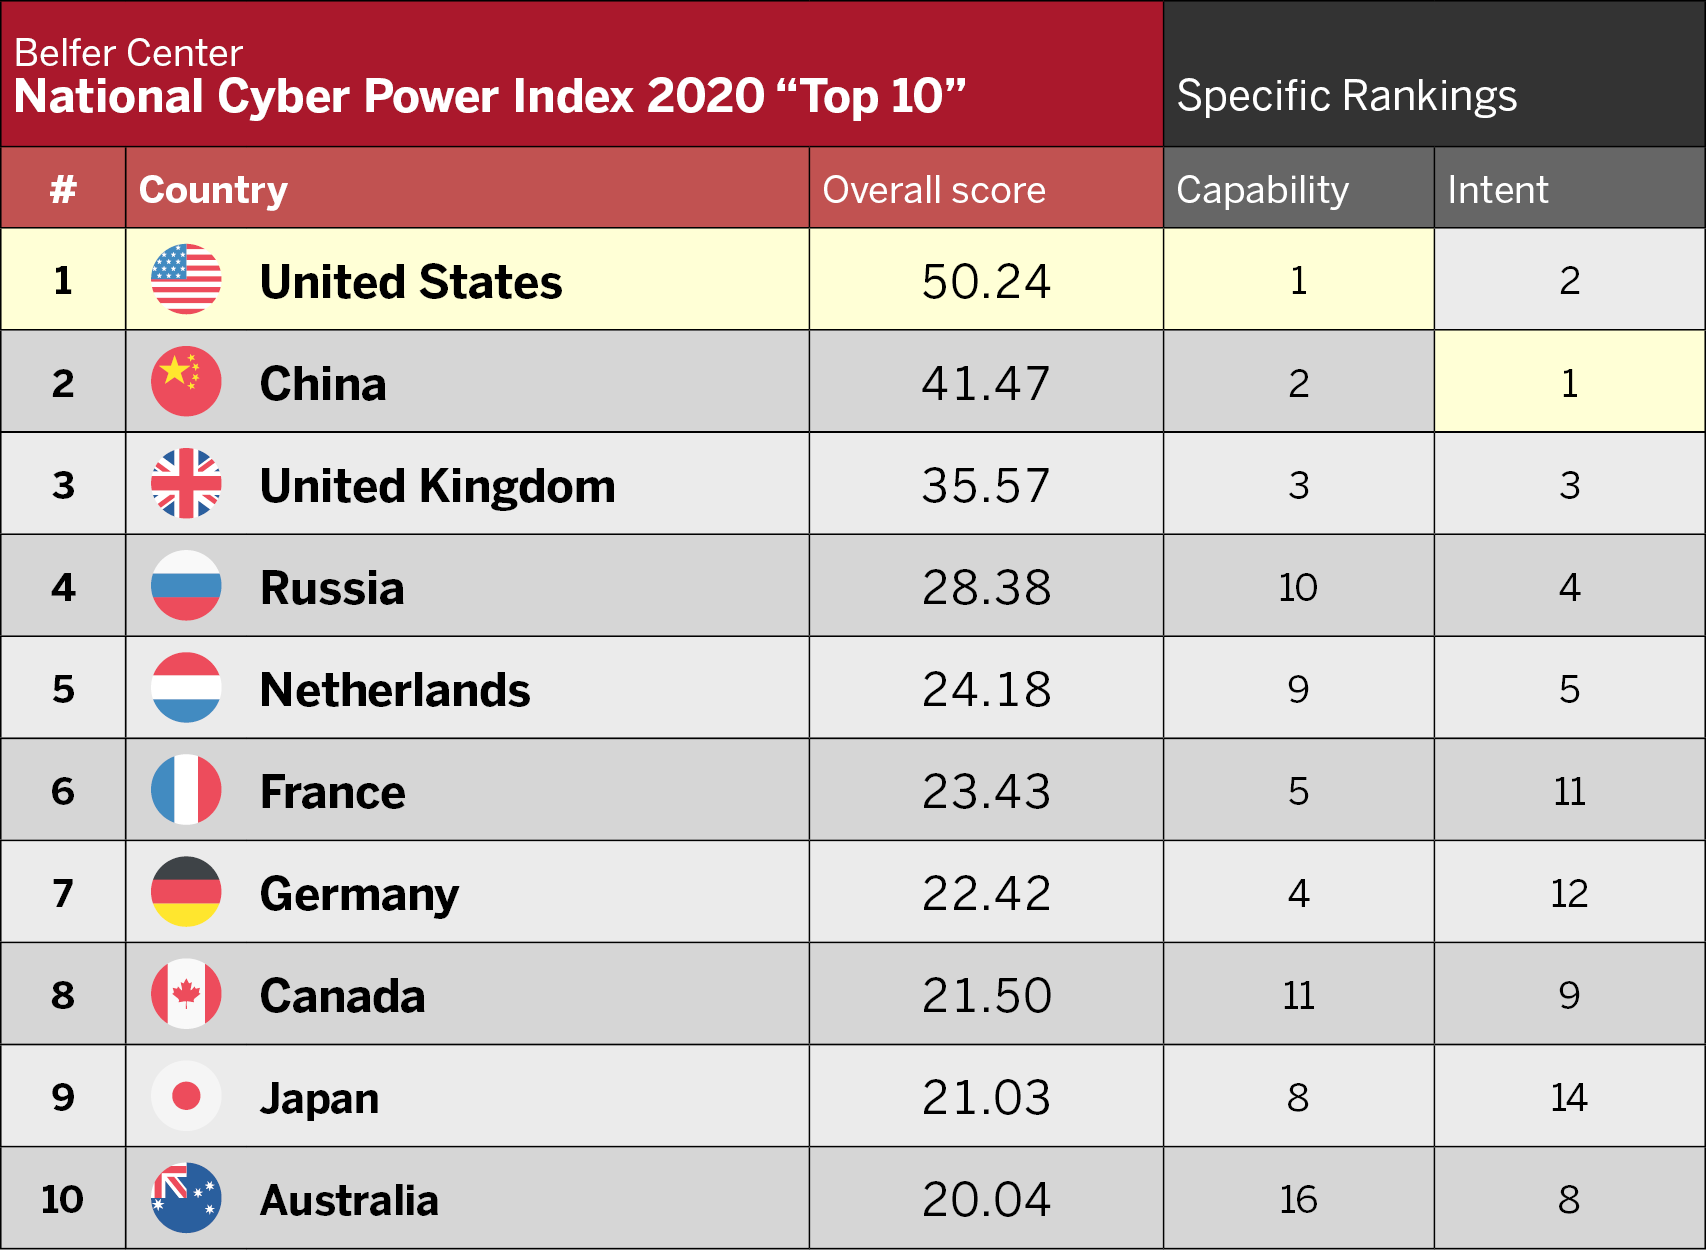 Chart displaying the top-10 cyber powers as ranked in the index this year. In order, they are: United States; China; United Kingdom; Russia; Netherlands; France; Germany; Canada; Japan; Australia